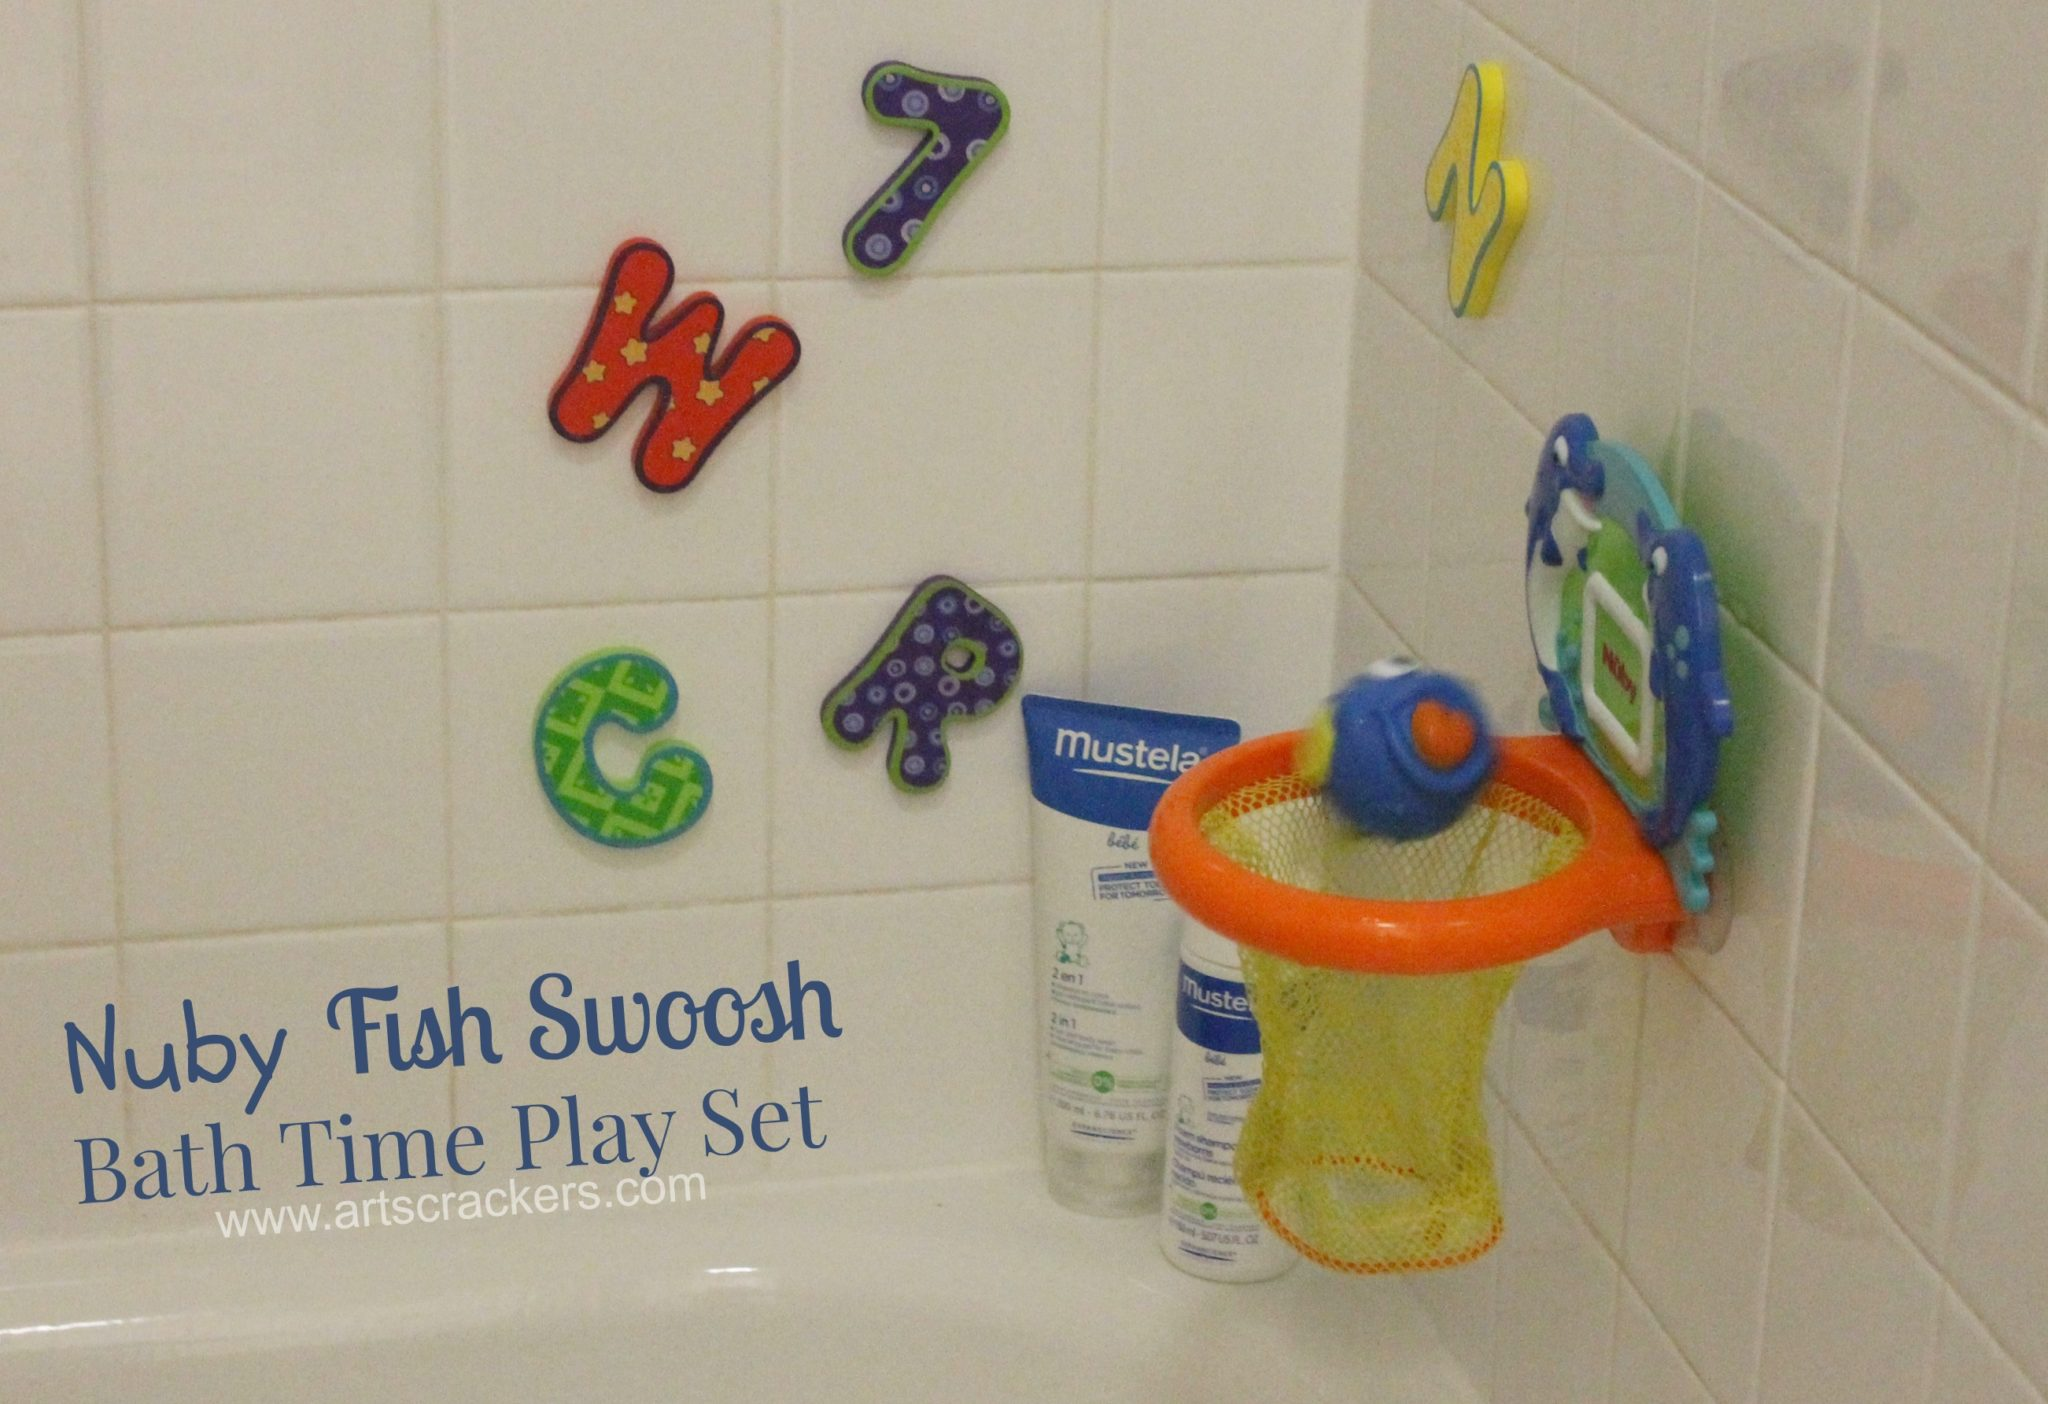 Nuby Fish Swoosh Bath Hoop Game